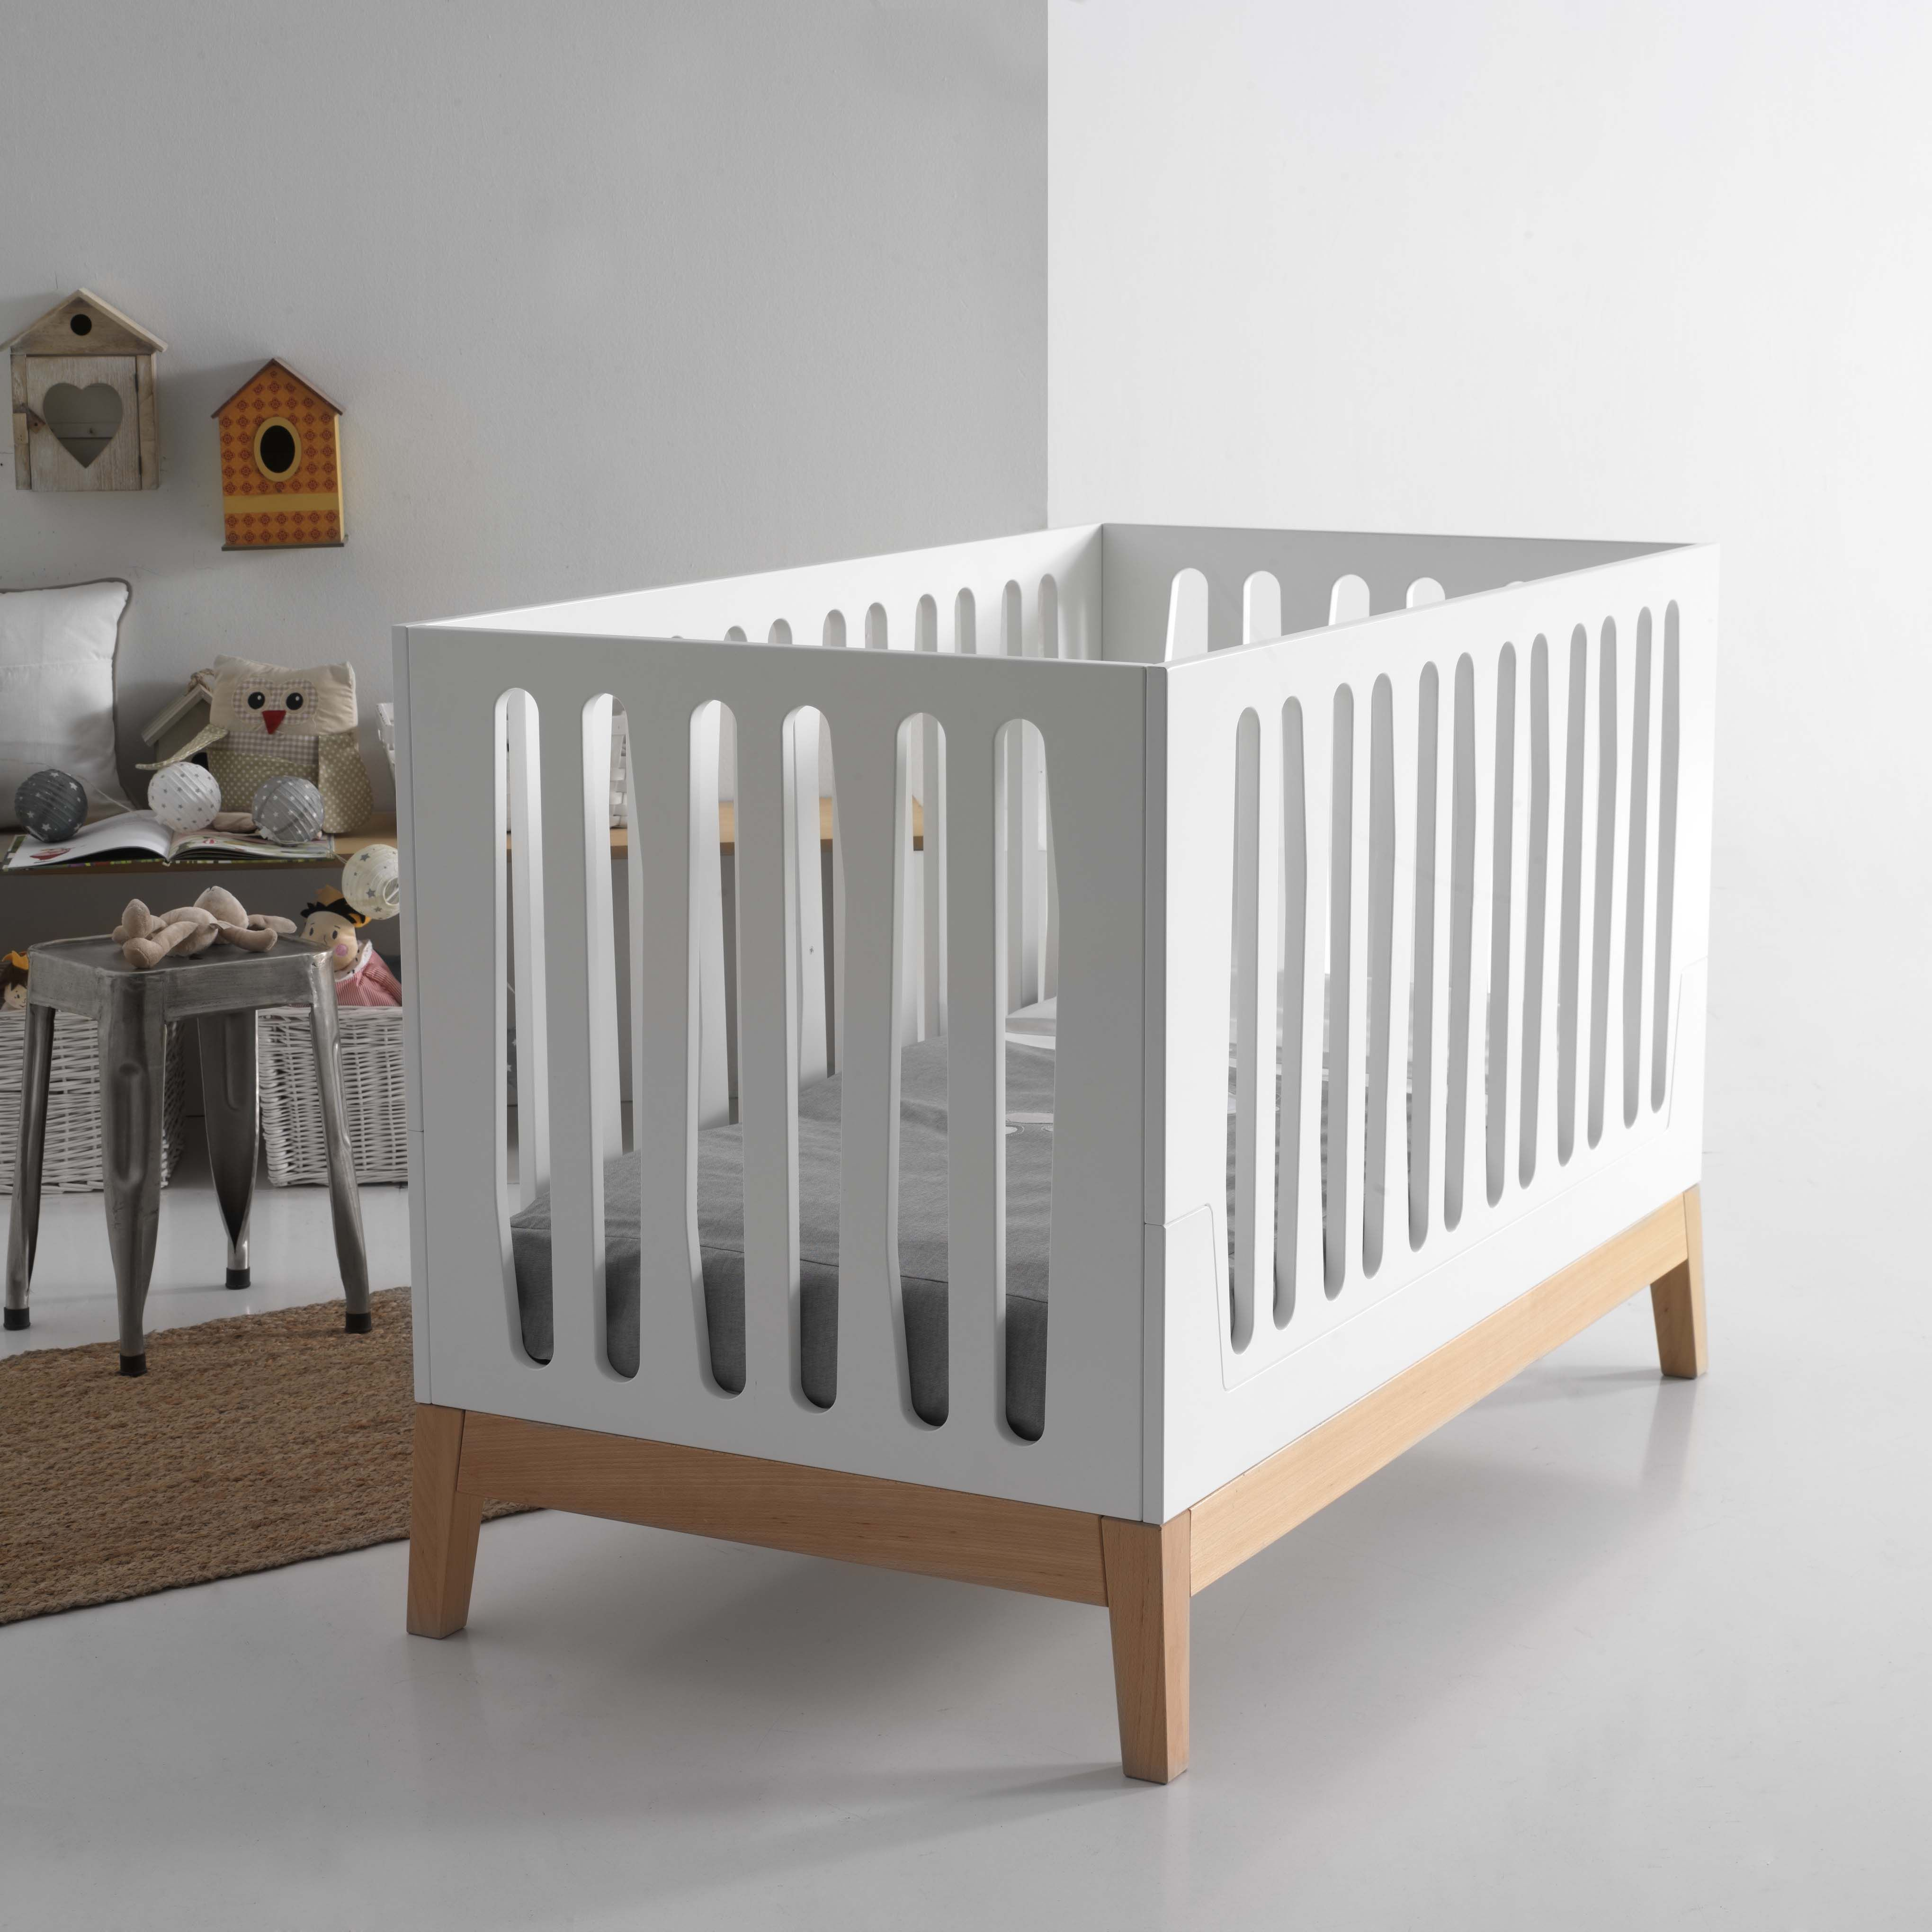 Nubol convertible baby crib made in spain now for sale in the us with free